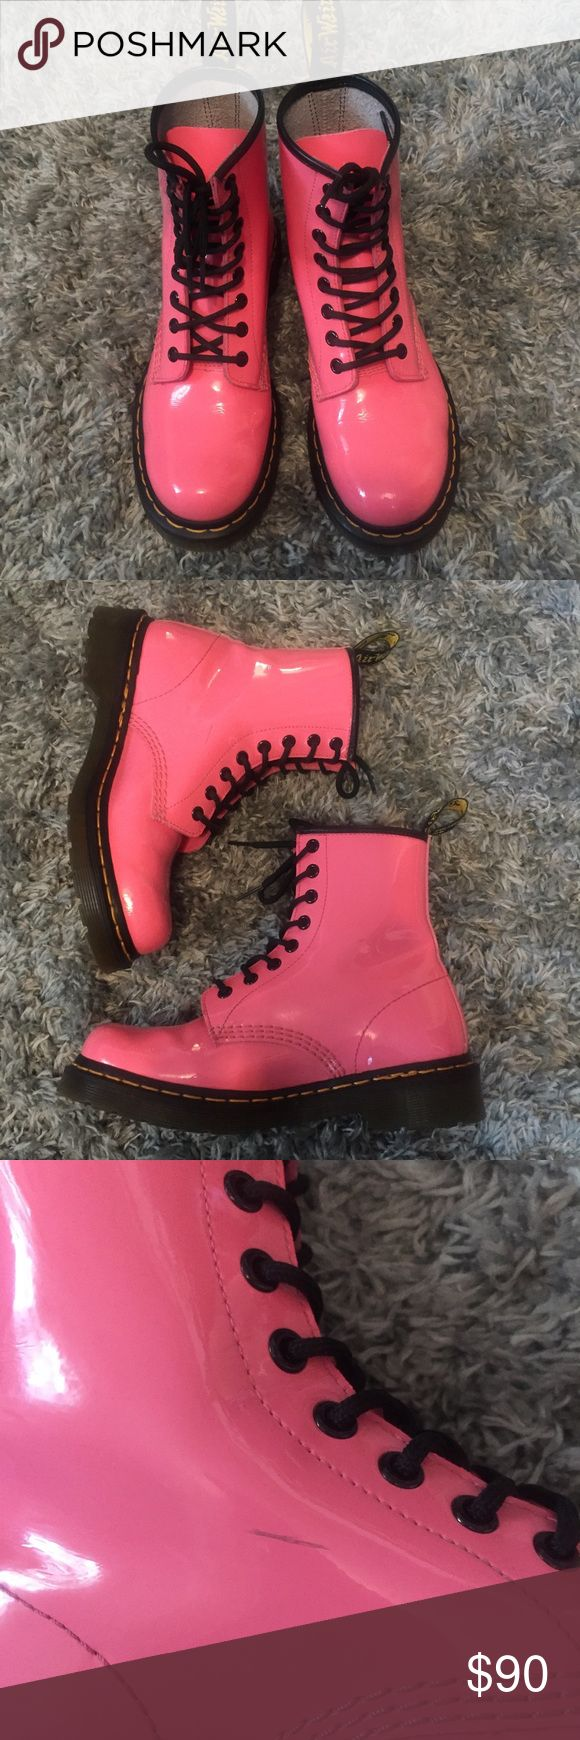 Saturday Sale! Dr. Martens Boots In Acid Pink These 1460 Patent Leather 8 Eye Lamper In Acid Pink Boots Dr. Martens are perfect for every girl that loves a pop of color. They do have one scuff on the inner left boot but otherwise they're in great condition! Will consider all offers!                                                                                  <Reduced price until end of day 2.18.17> Dr. Martens Shoes Lace Up Boots